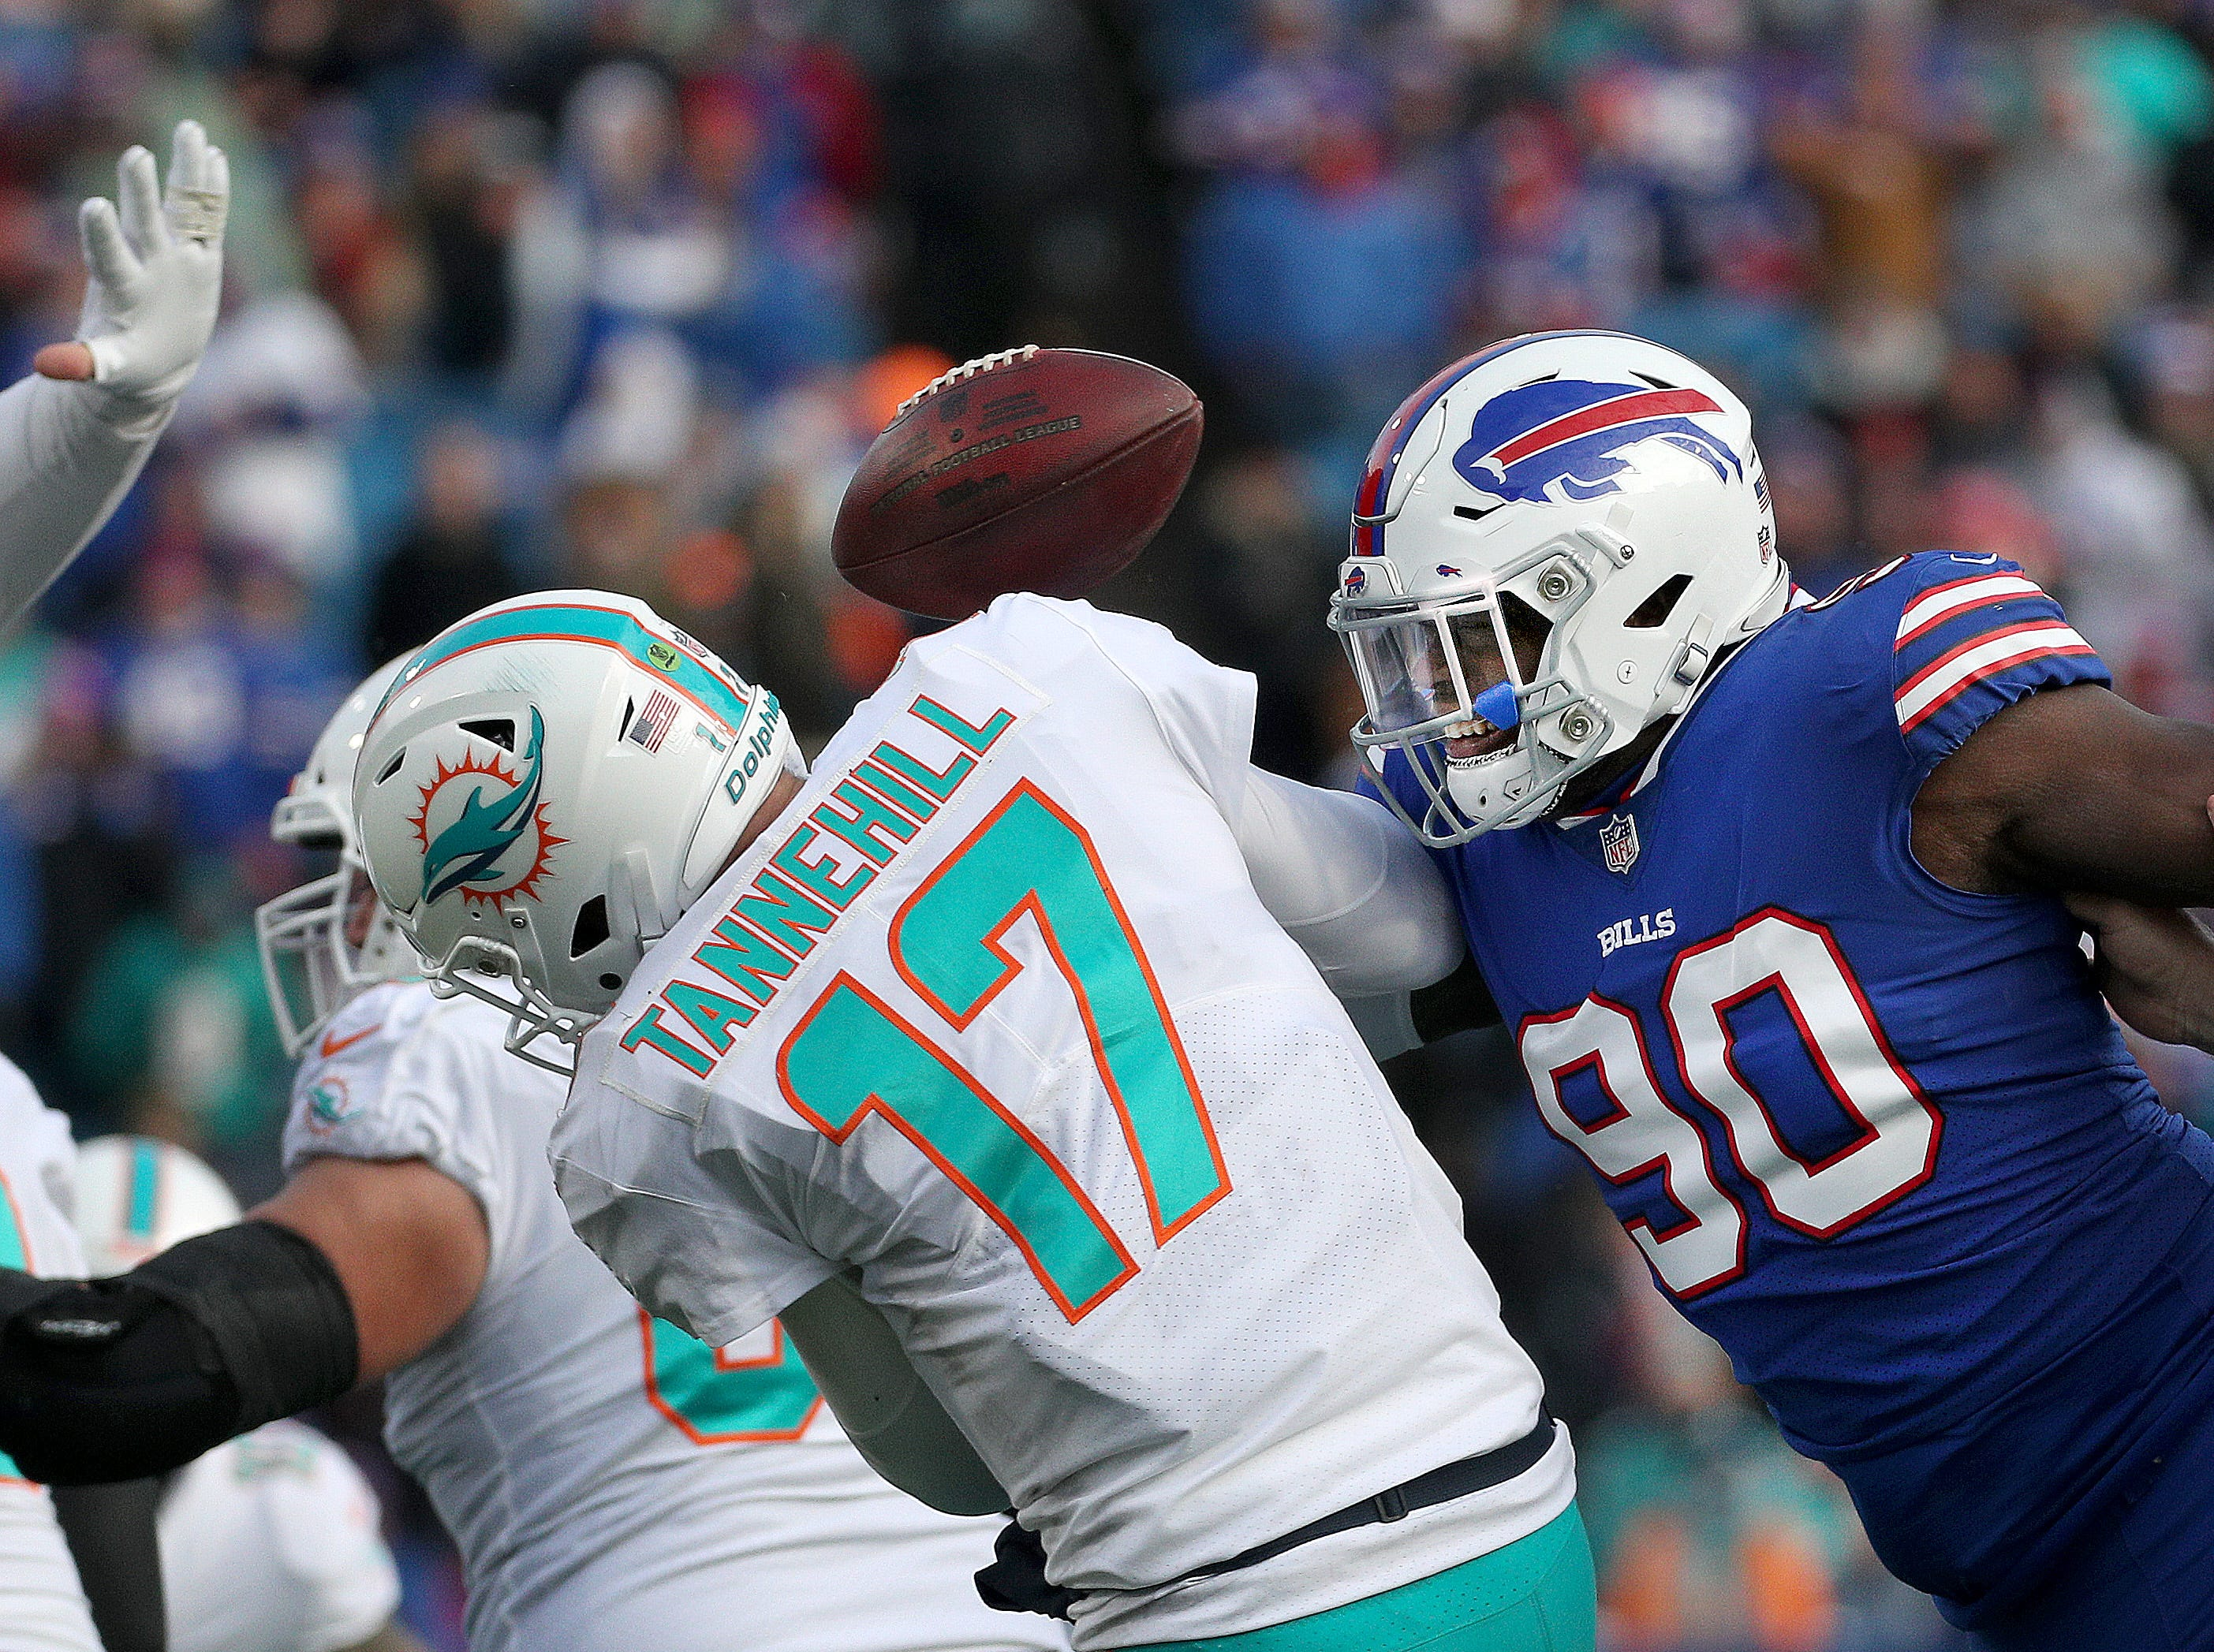 Bills defensive end Shaq Lawson forces a fumble as he sacks Miami quarterback Ryan Tannehill.  The Bills beat the Dolphins 42-17.